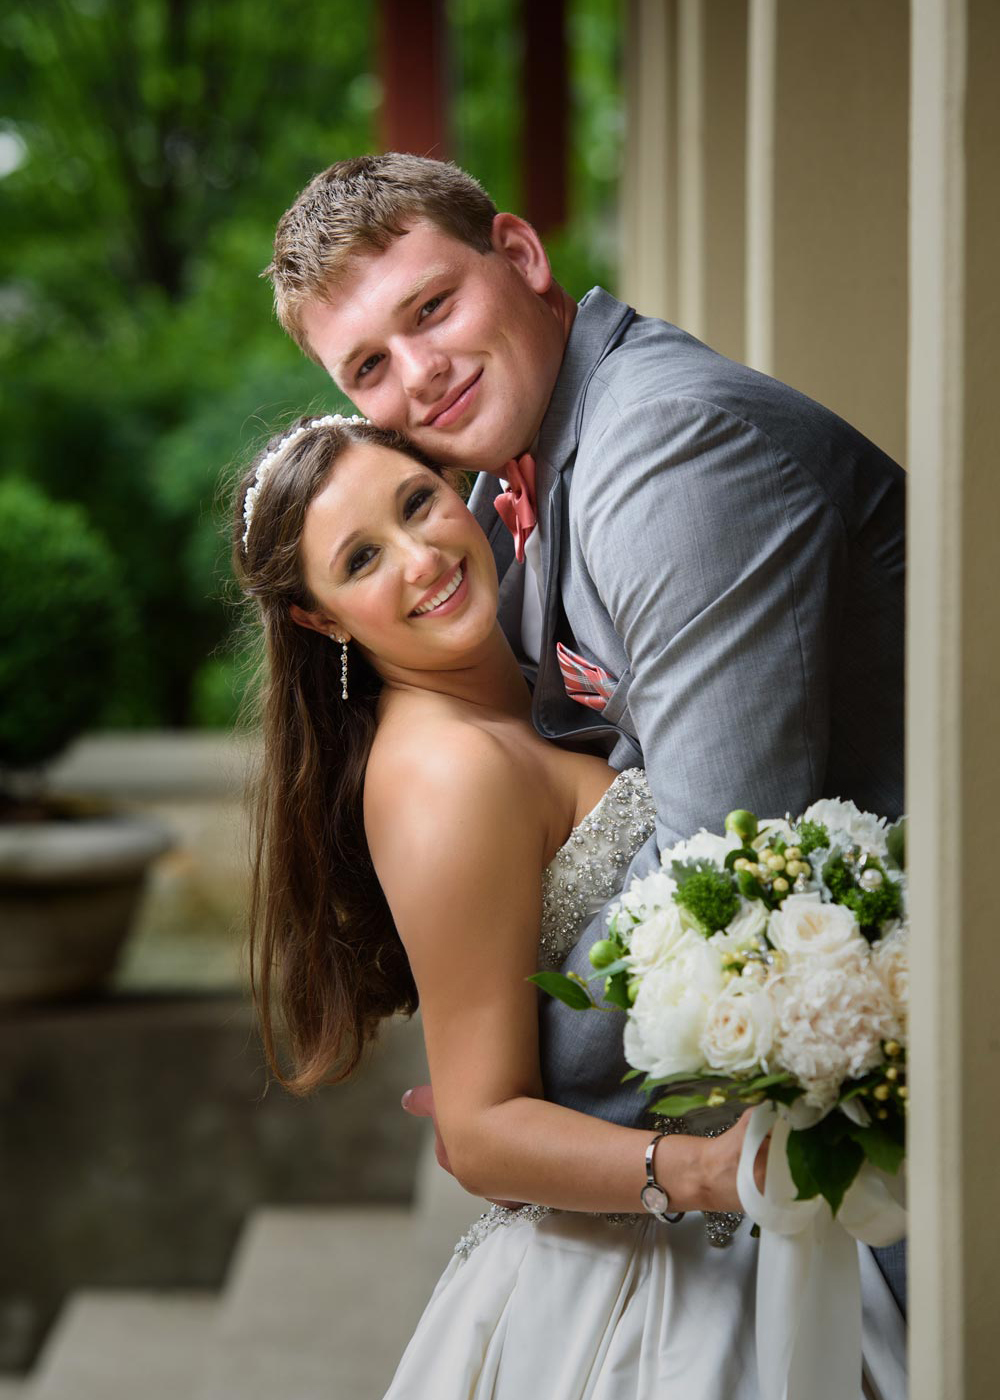 wedding_photographer_lexington_ky_studio_walz103.jpg